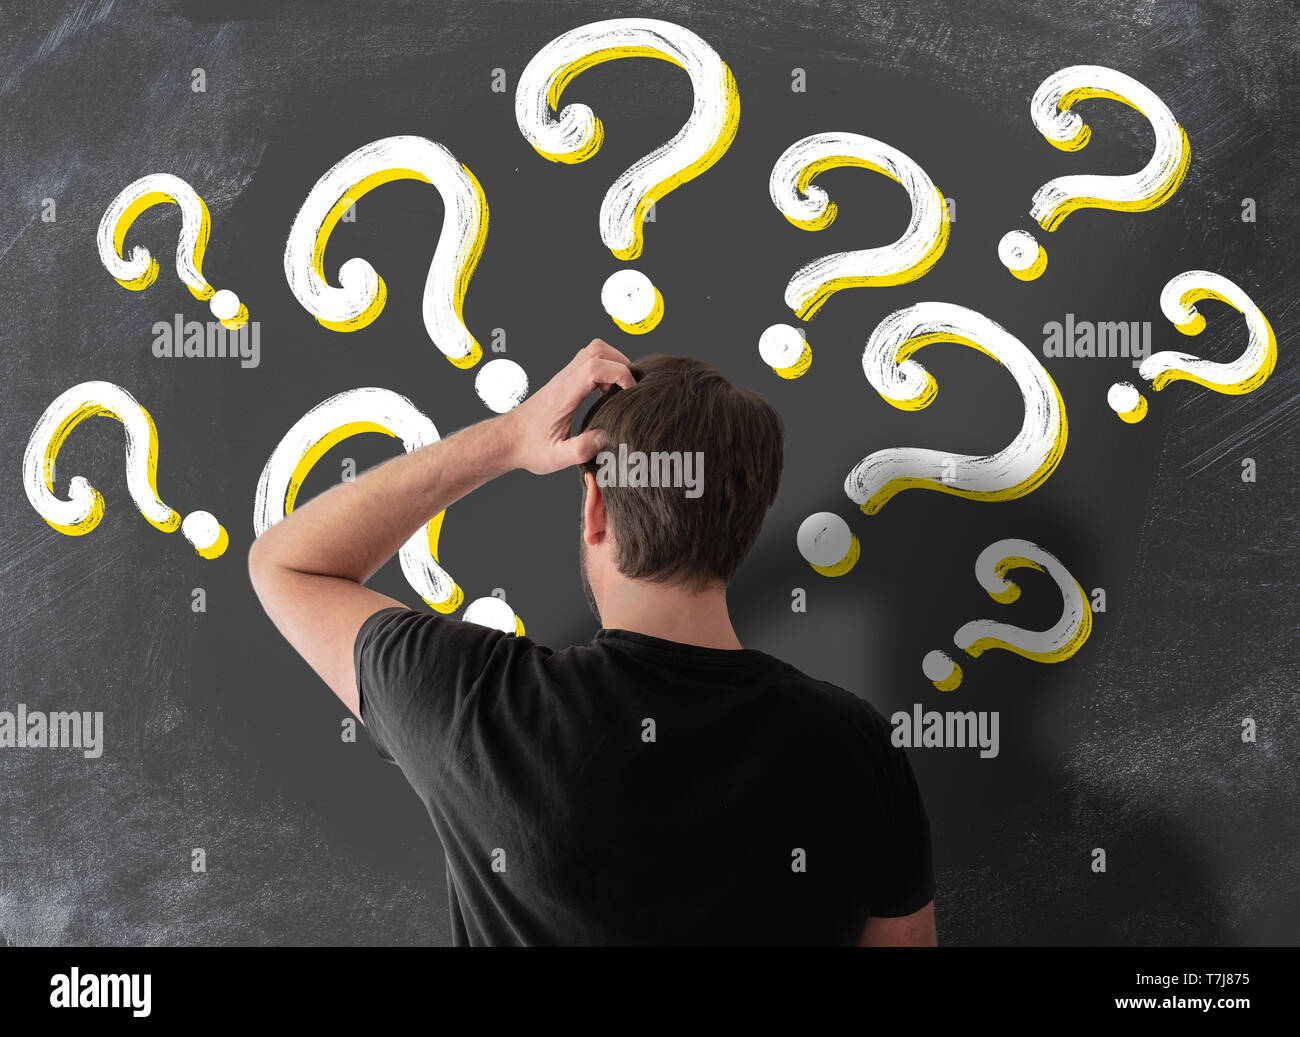 rear view of puzzled man in t-shirt scratching his head in confusion against blackboard filled with question marks - Stock Image